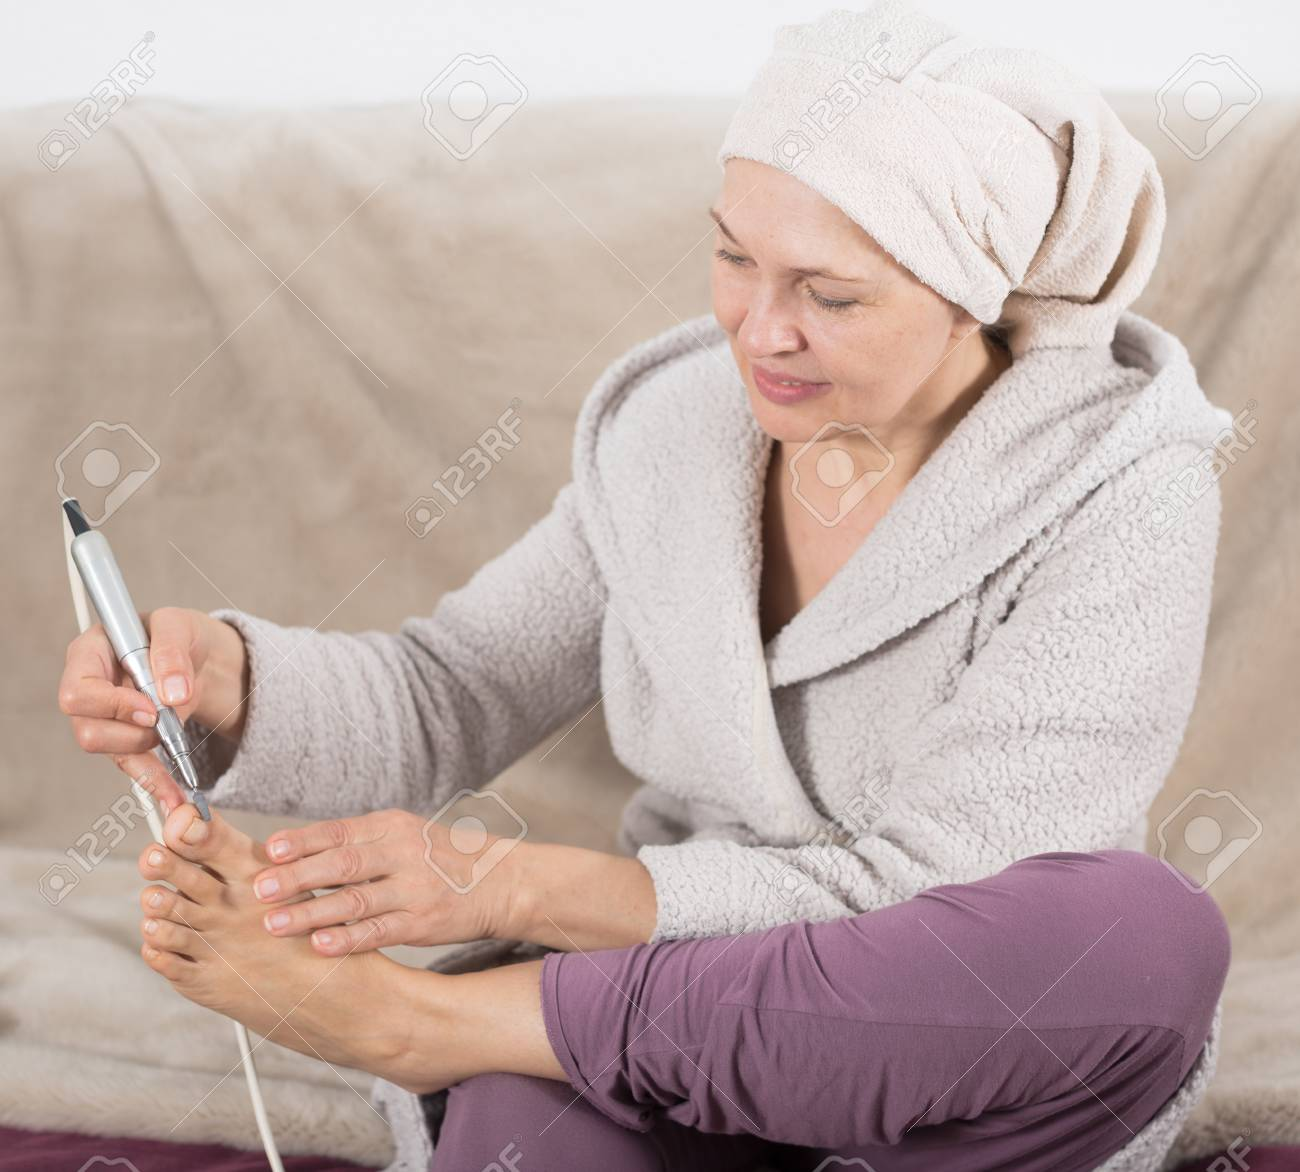 Elderly woman performing pedicure with special devices at home